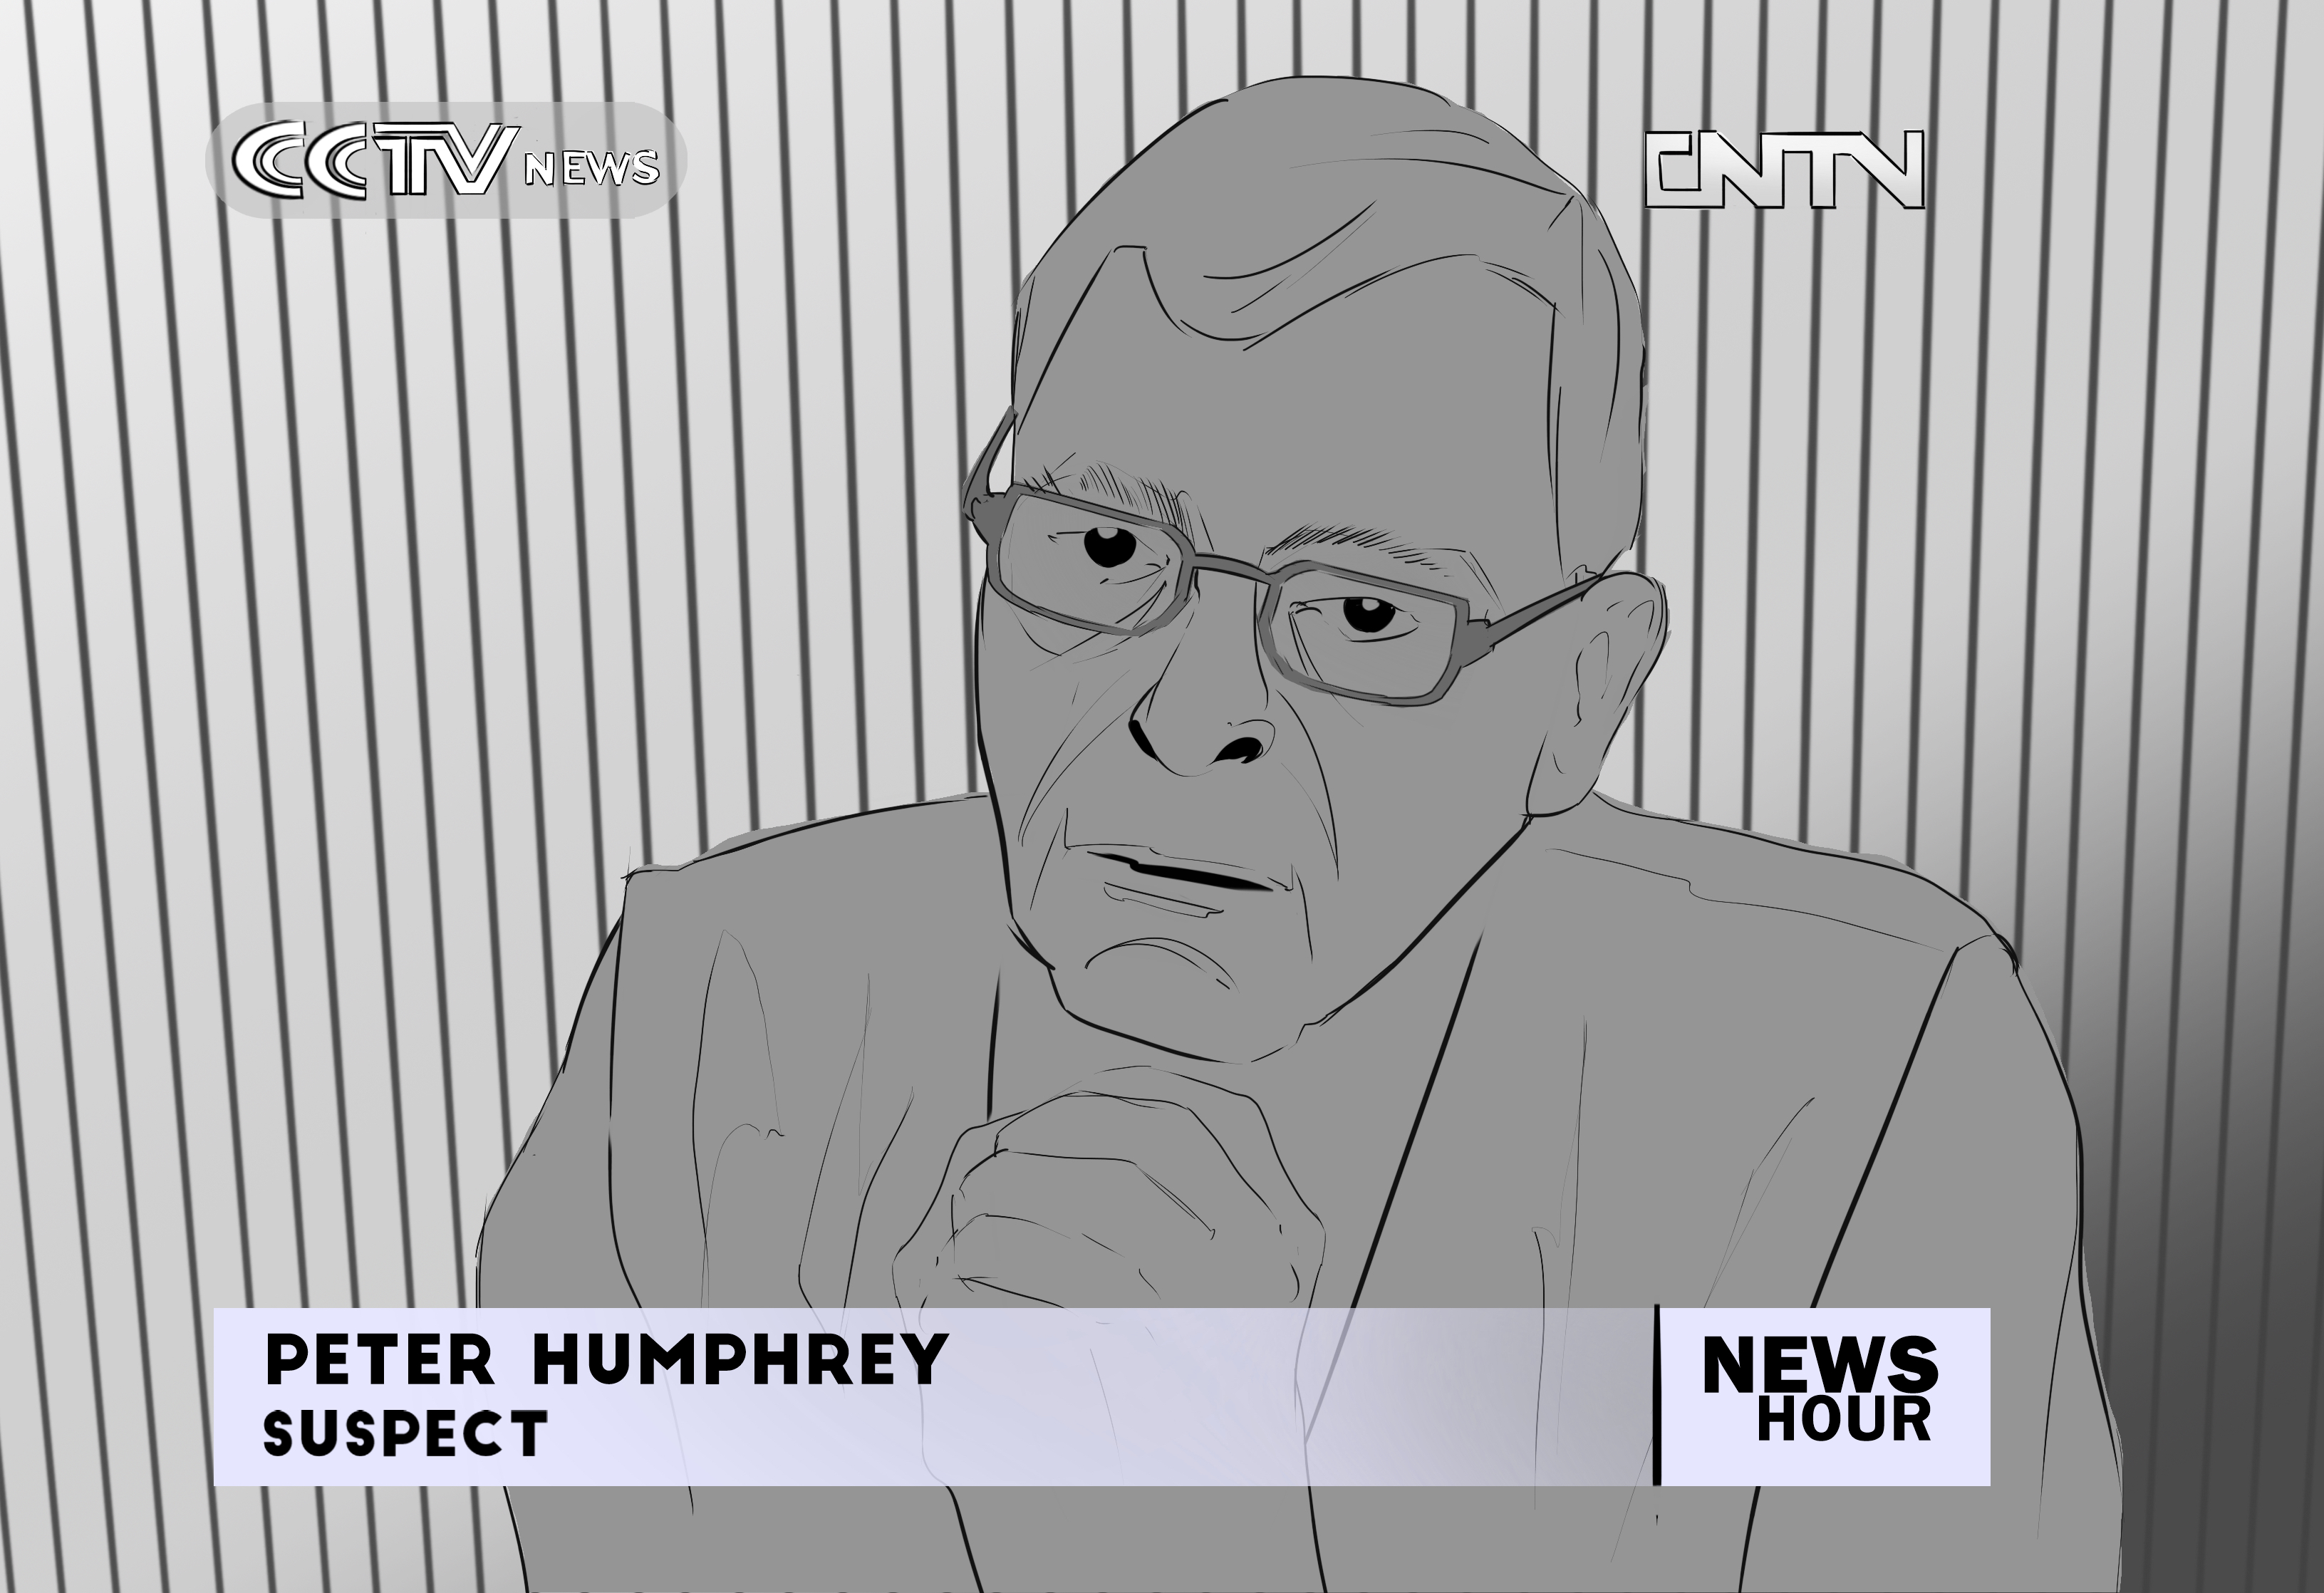 Sketch of Peter Humphrey's TV appearance